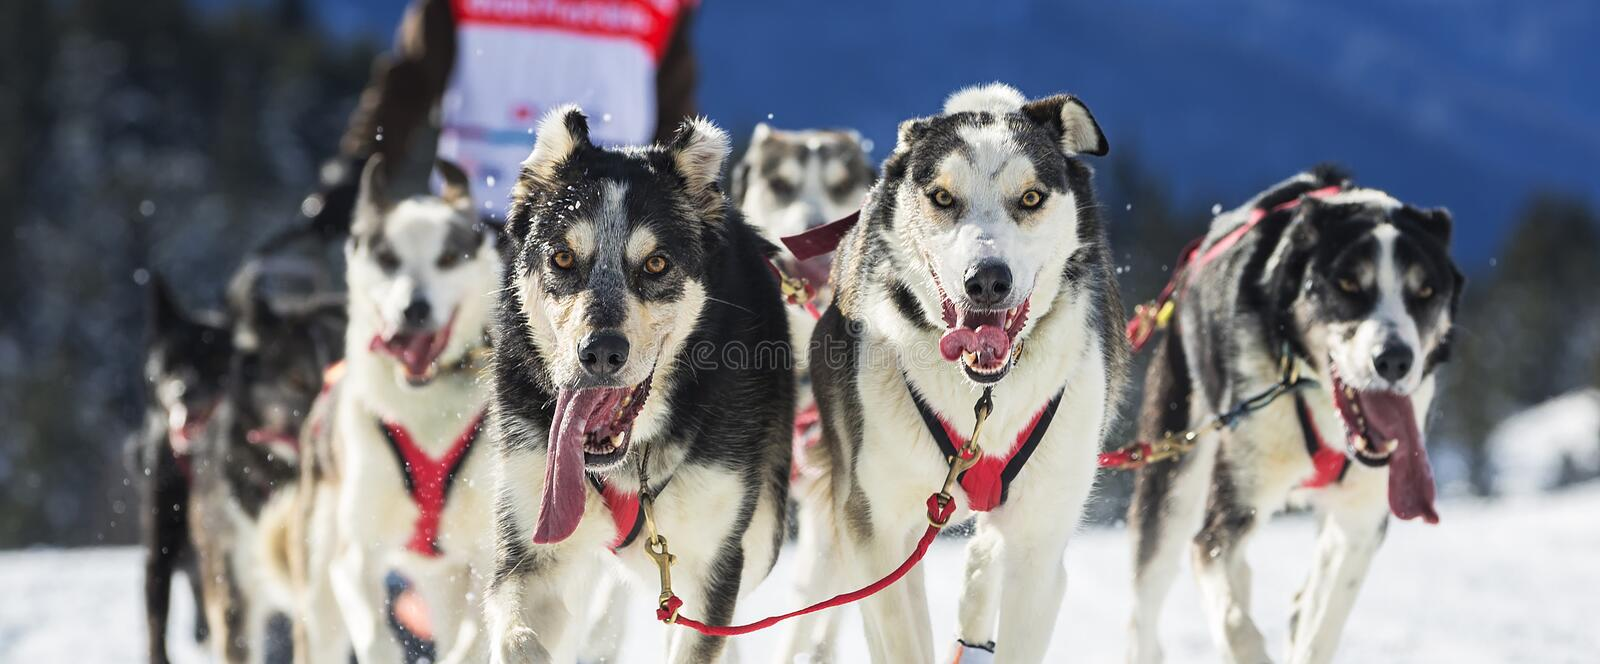 View of sled dog race on snow. In France royalty free stock photo